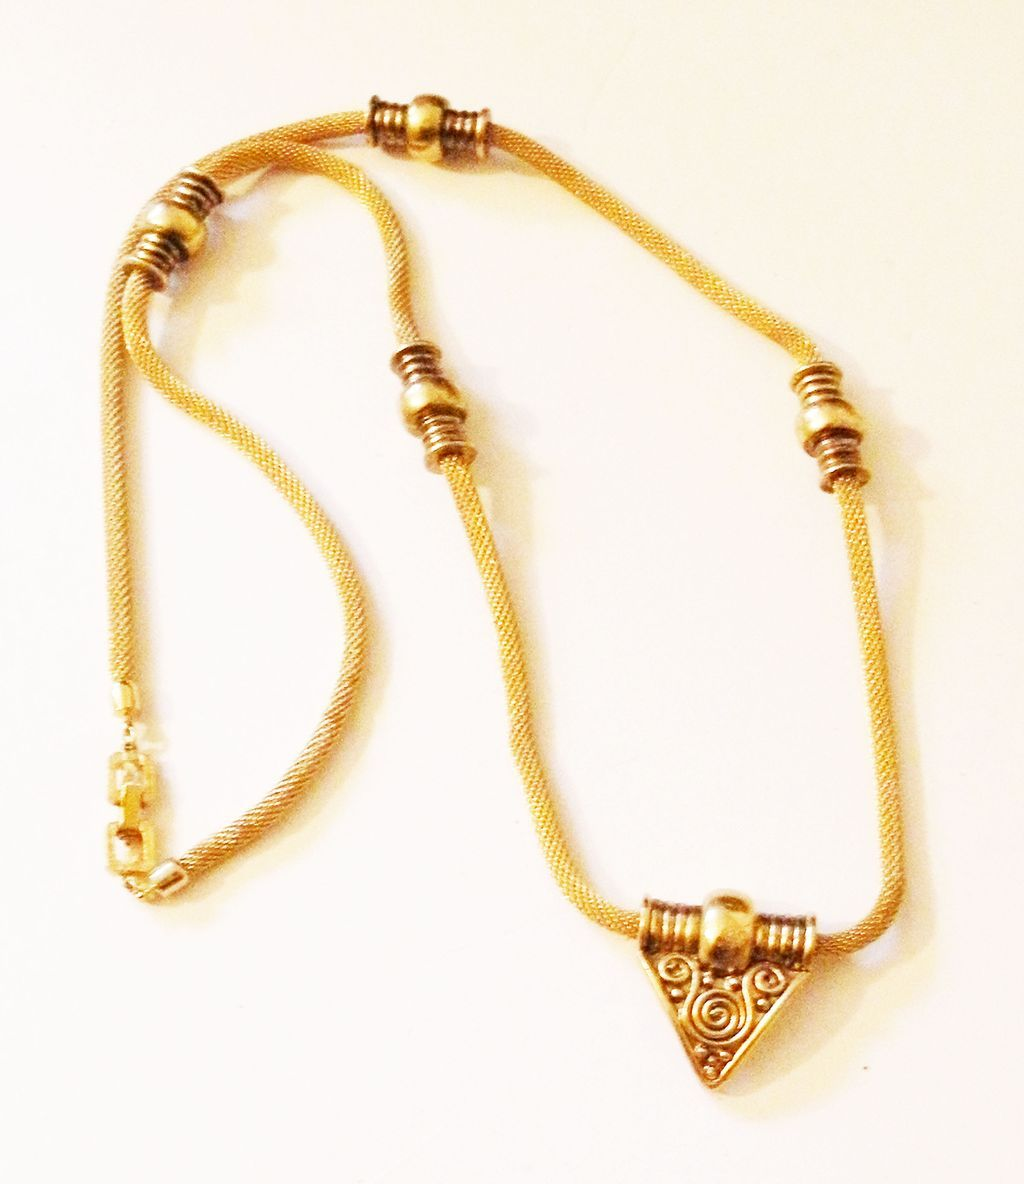 GIVENCHY 1977 Gaspipe Sautoir Necklace with Gold Tone Stations and Drop